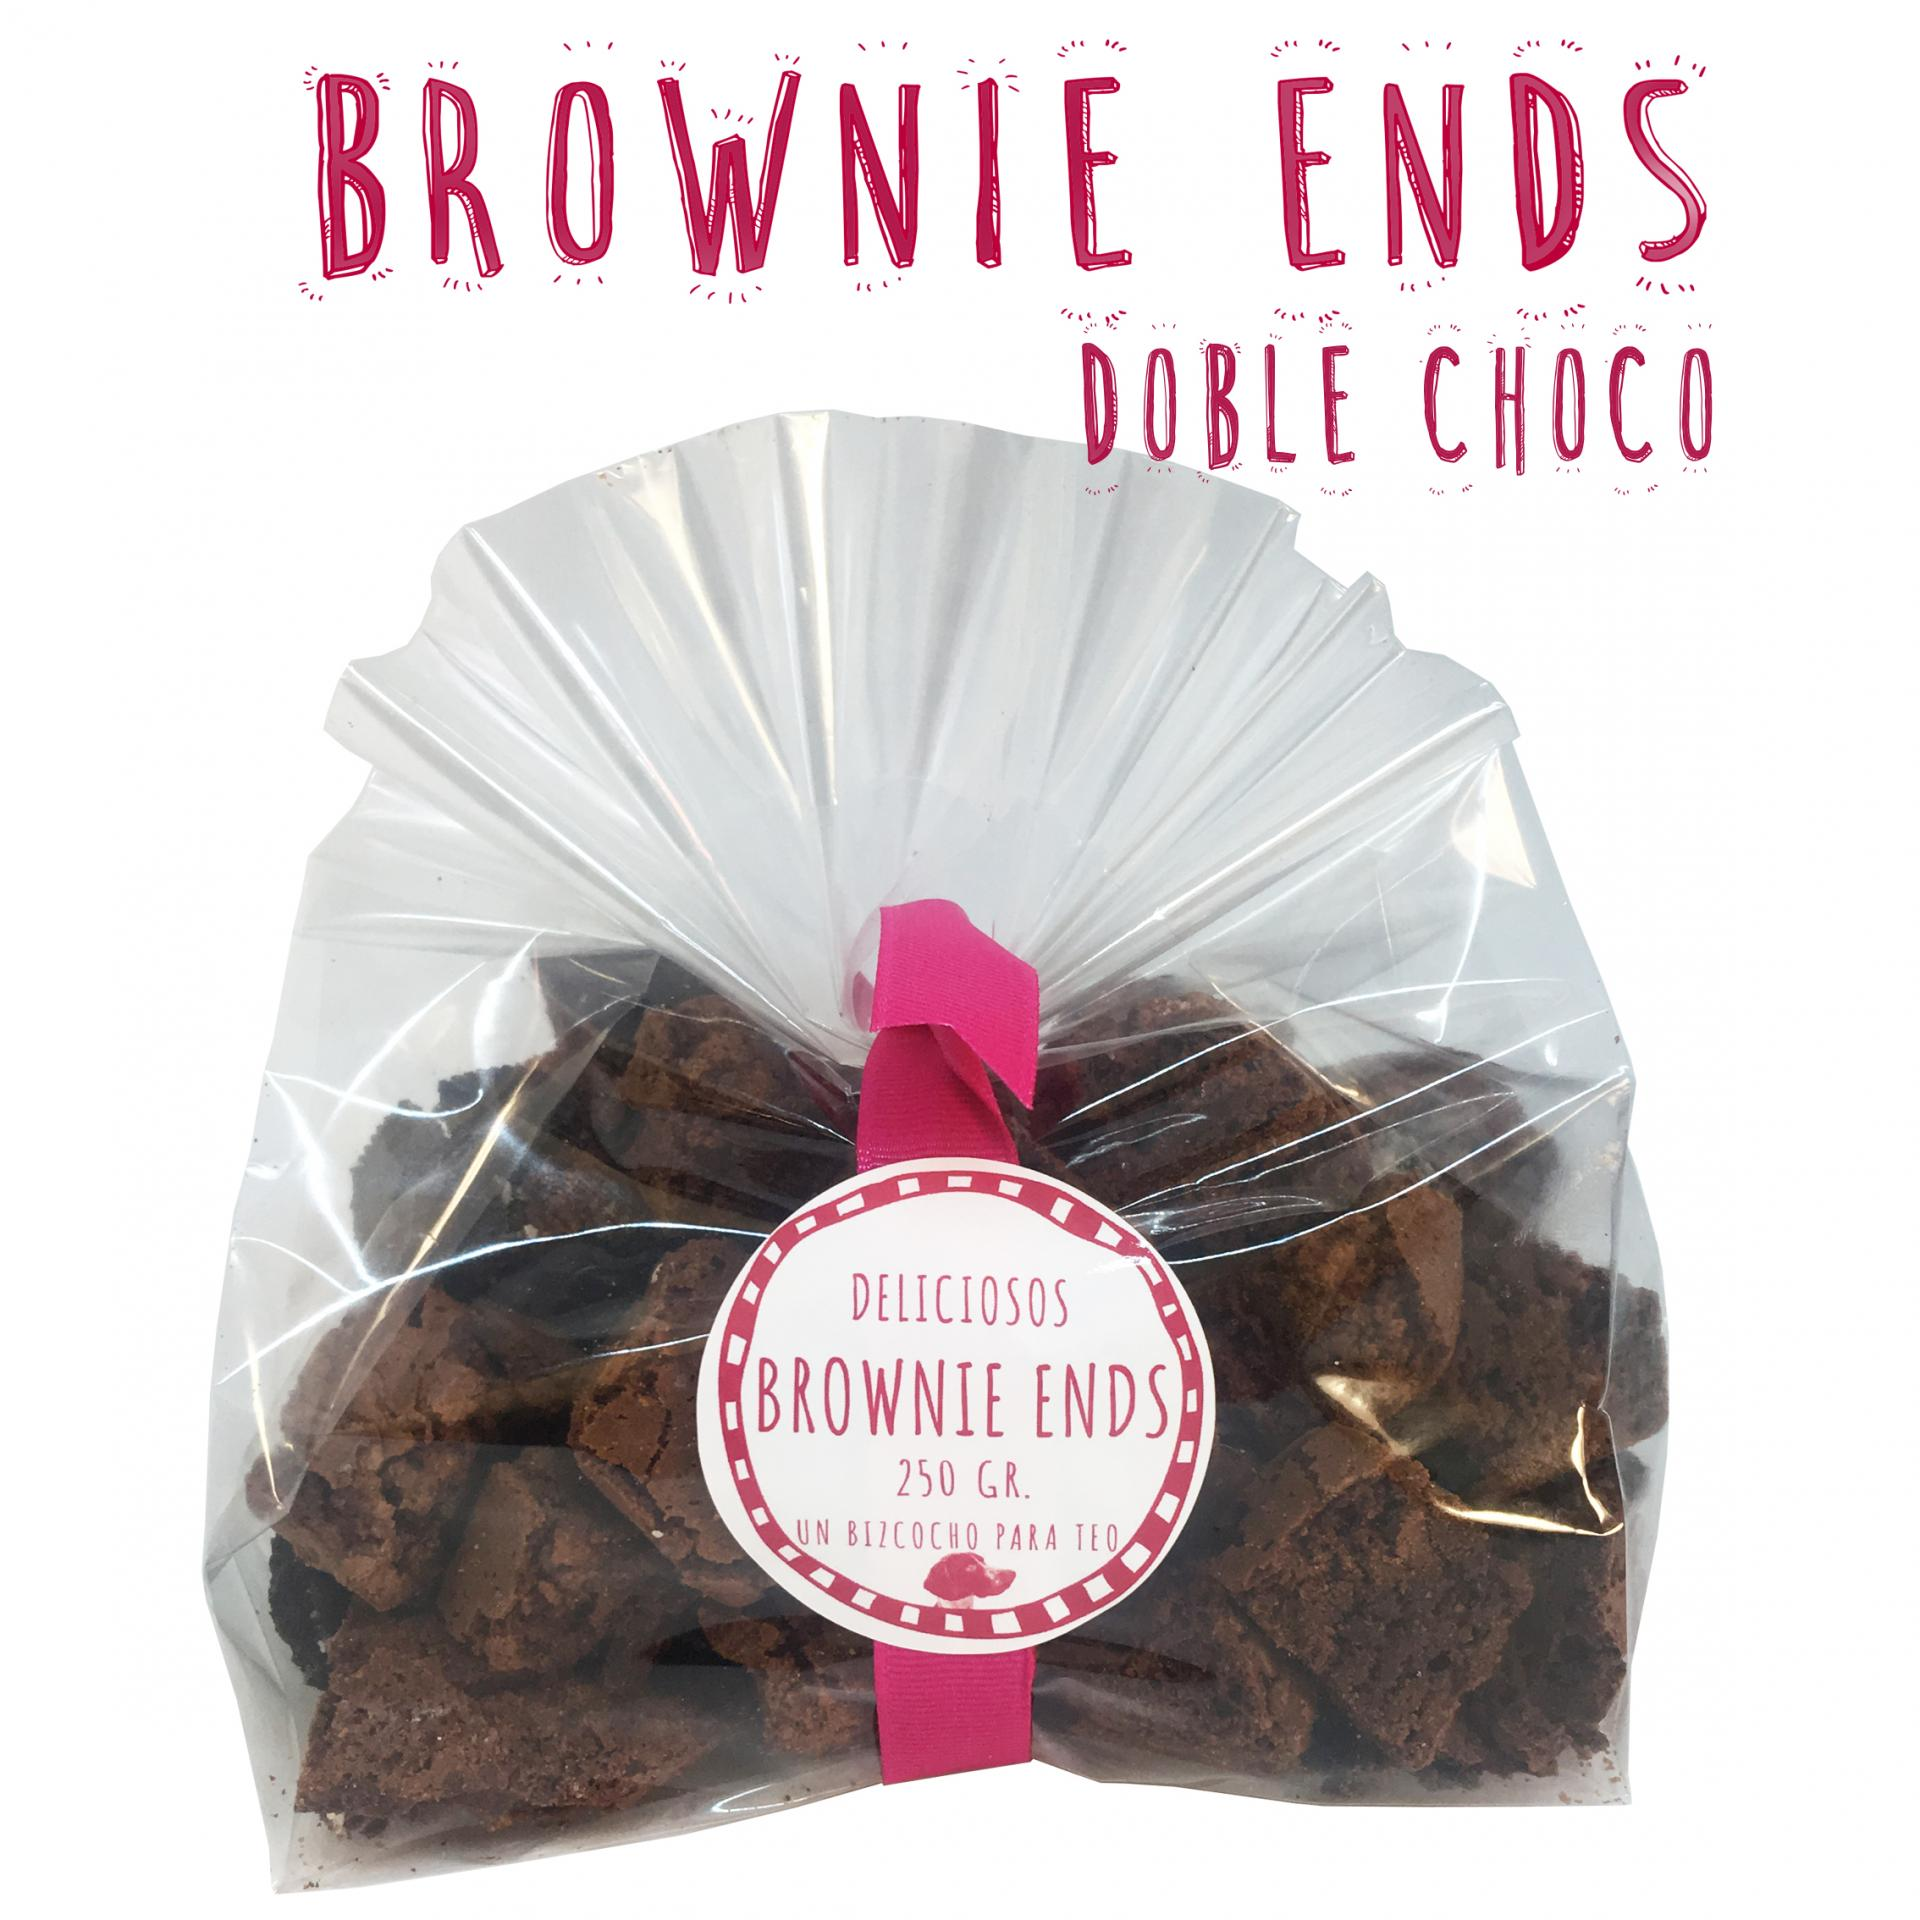 Brownie Ends Doble Chocolate